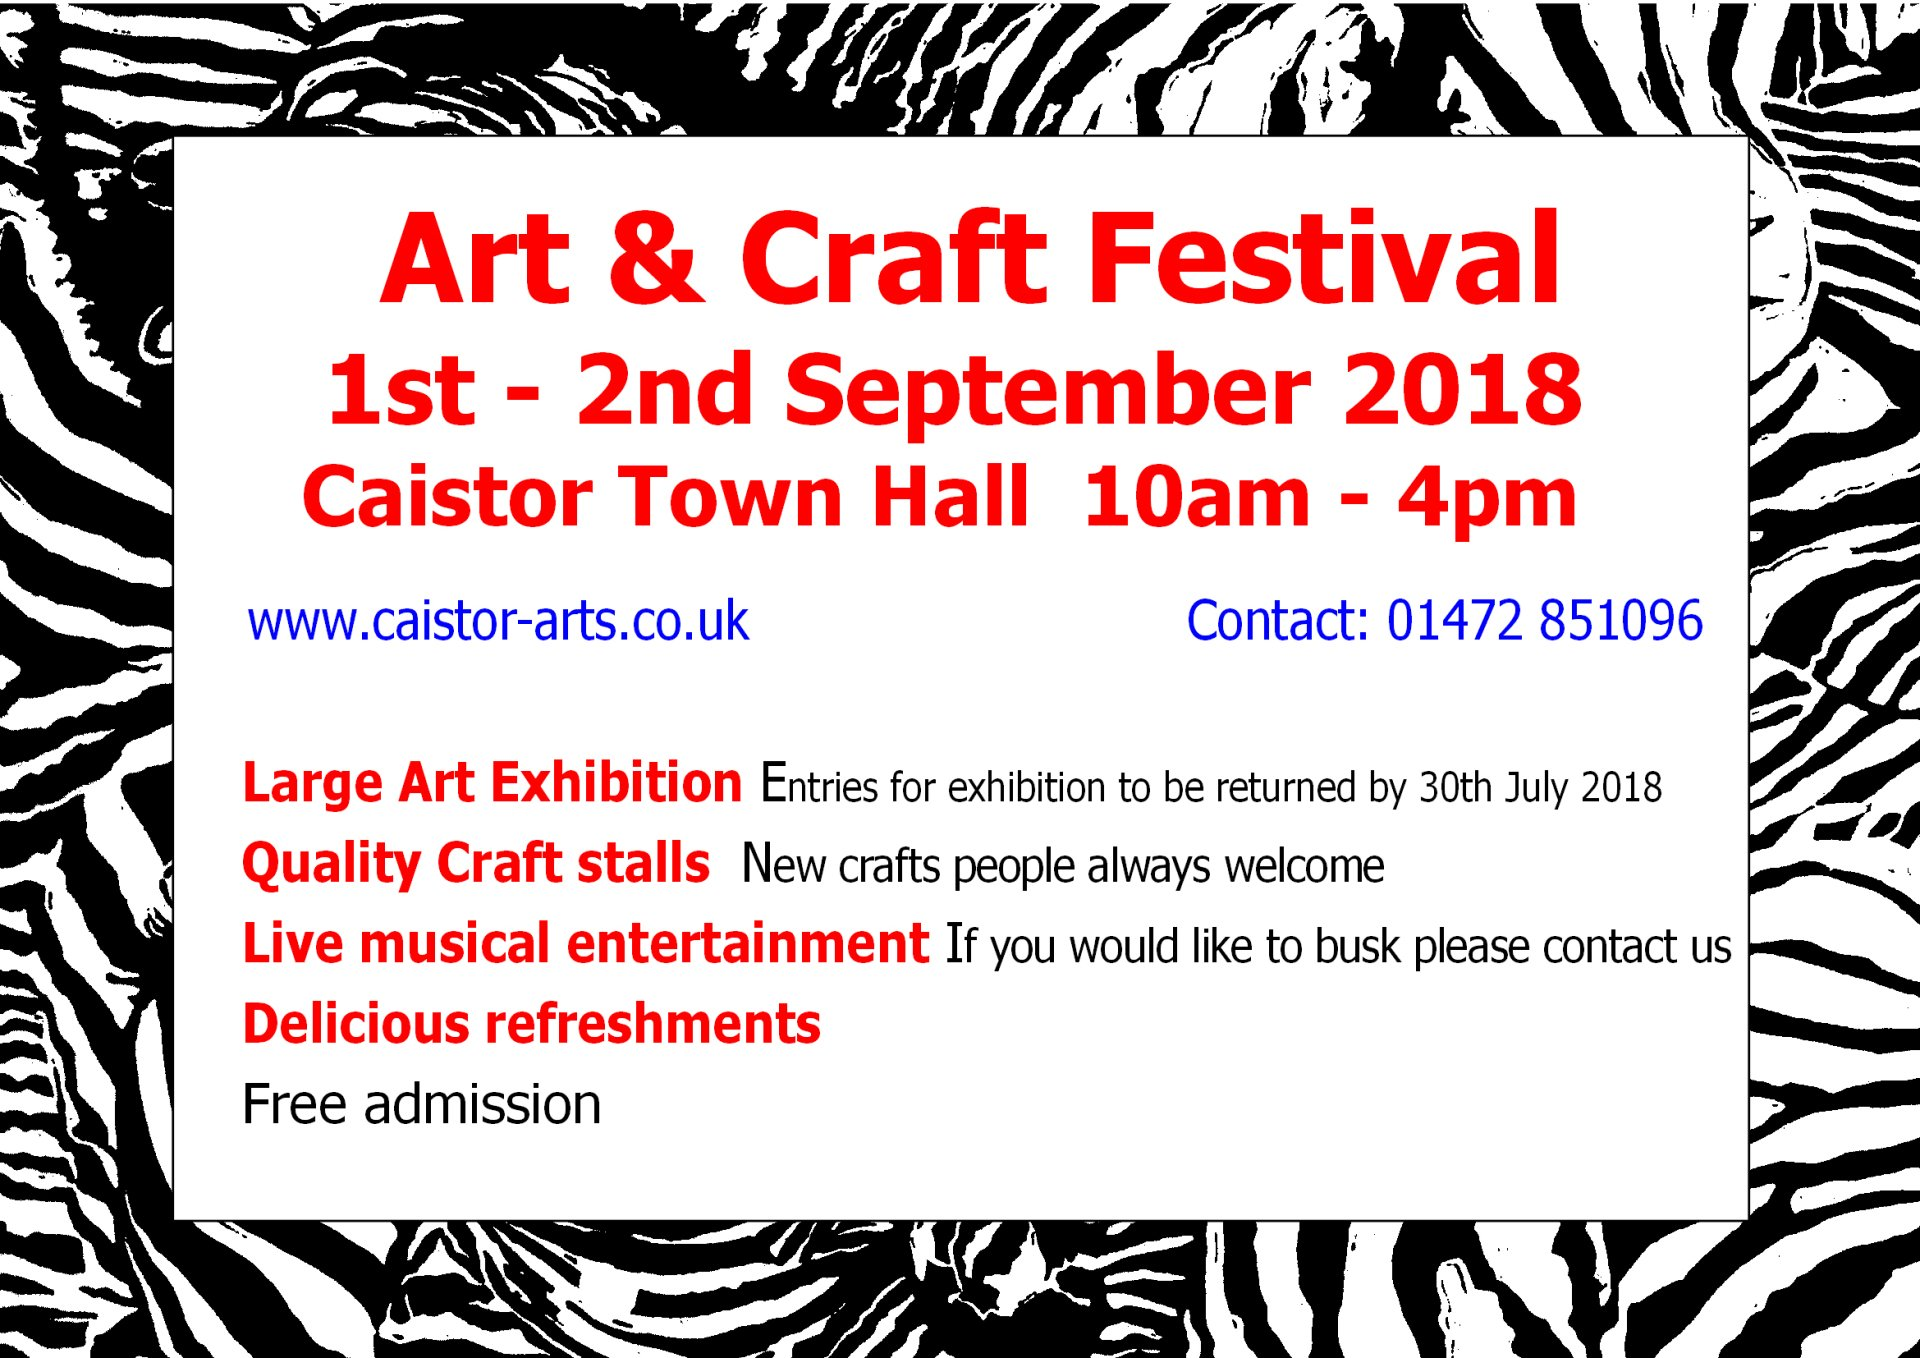 Caistor Arts And Craft Festival